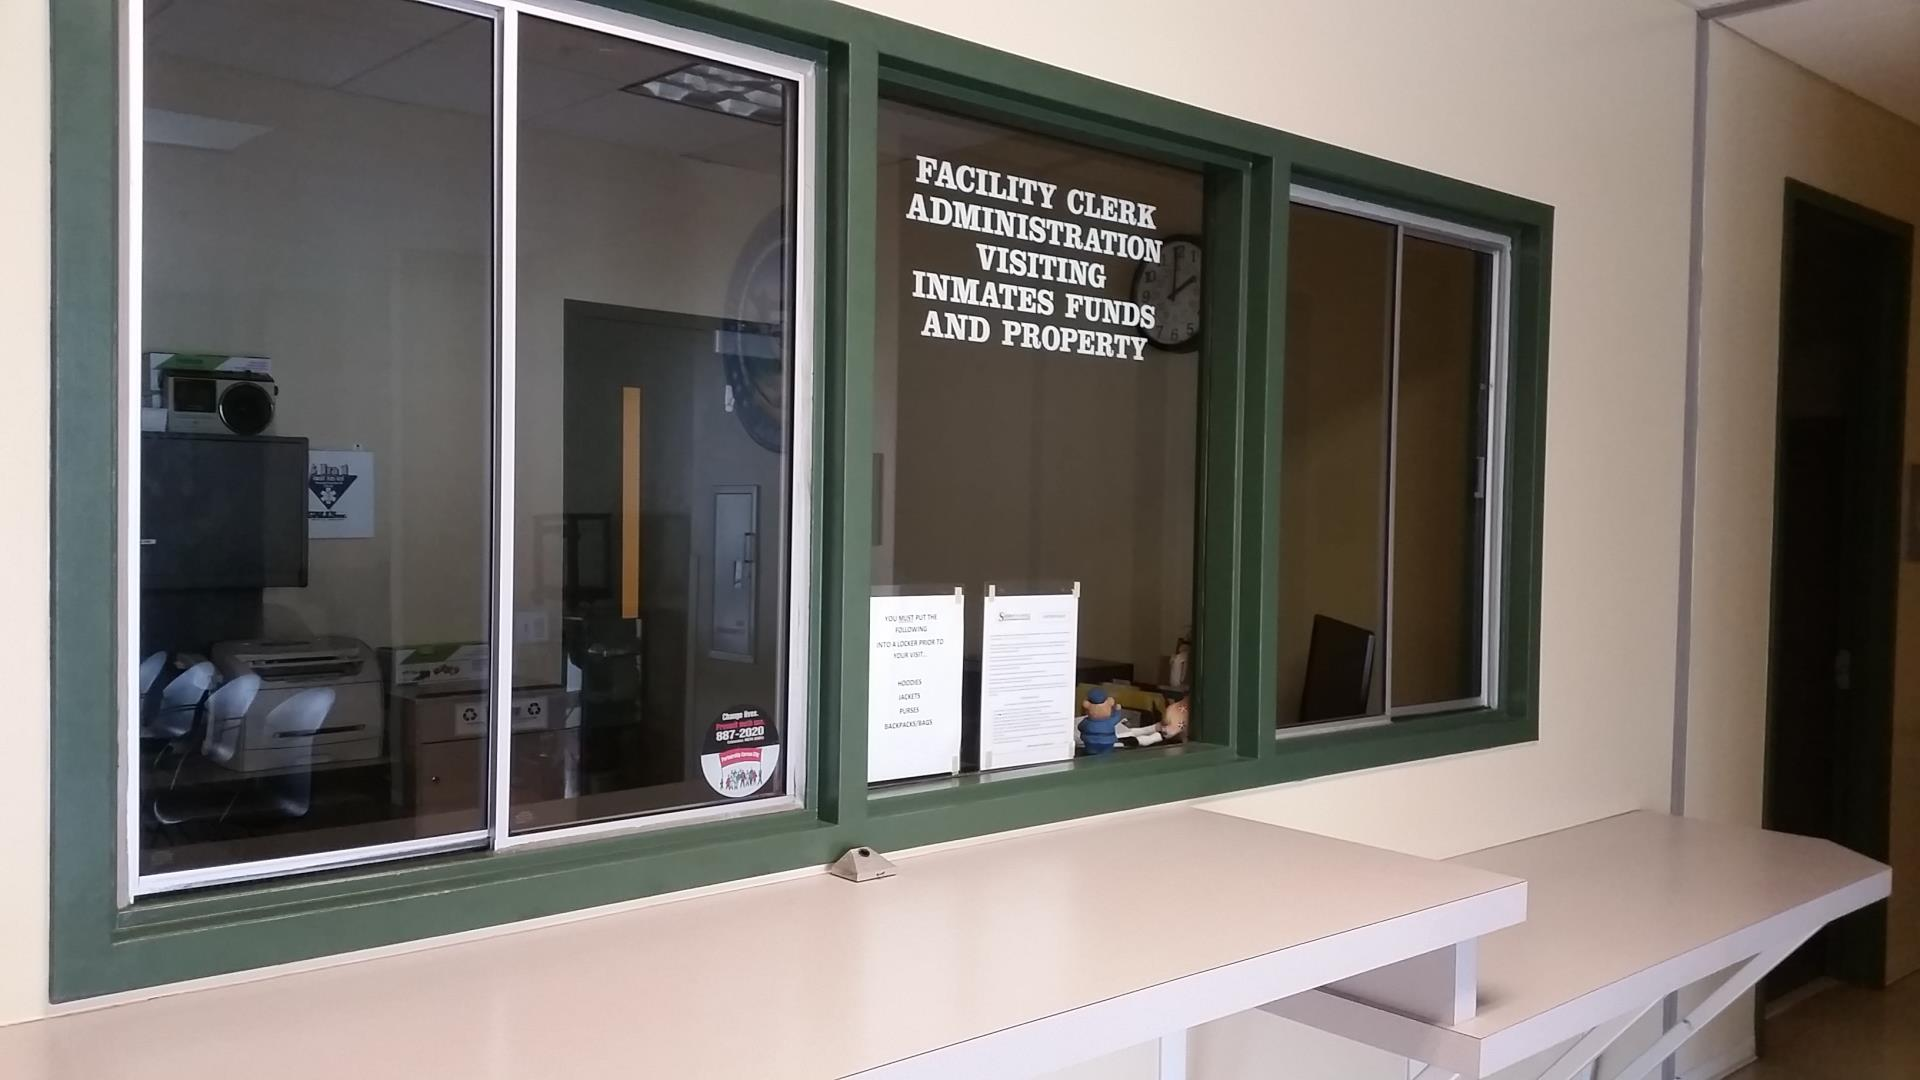 Administration Desk Accepts Inmate Funds and Property